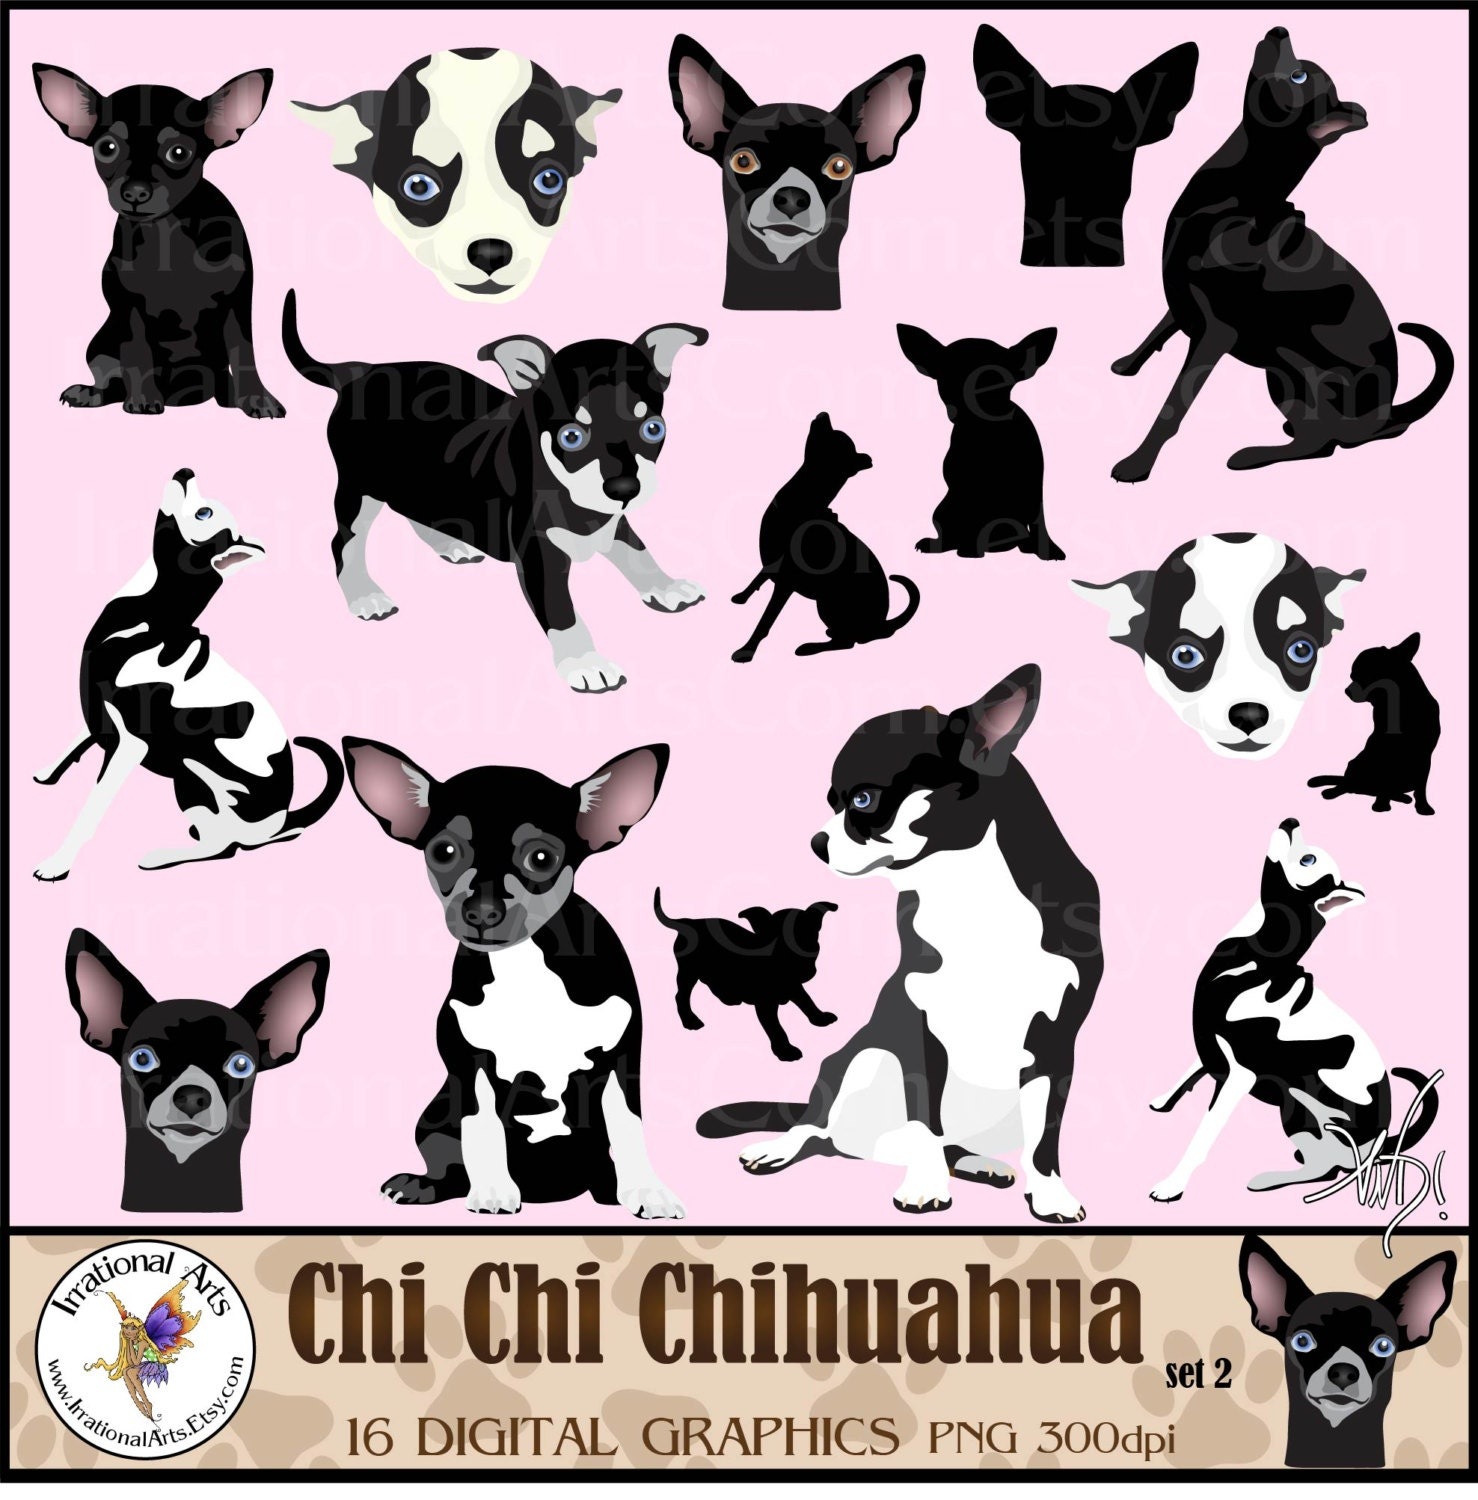 chihuahua dog clipart - photo #41